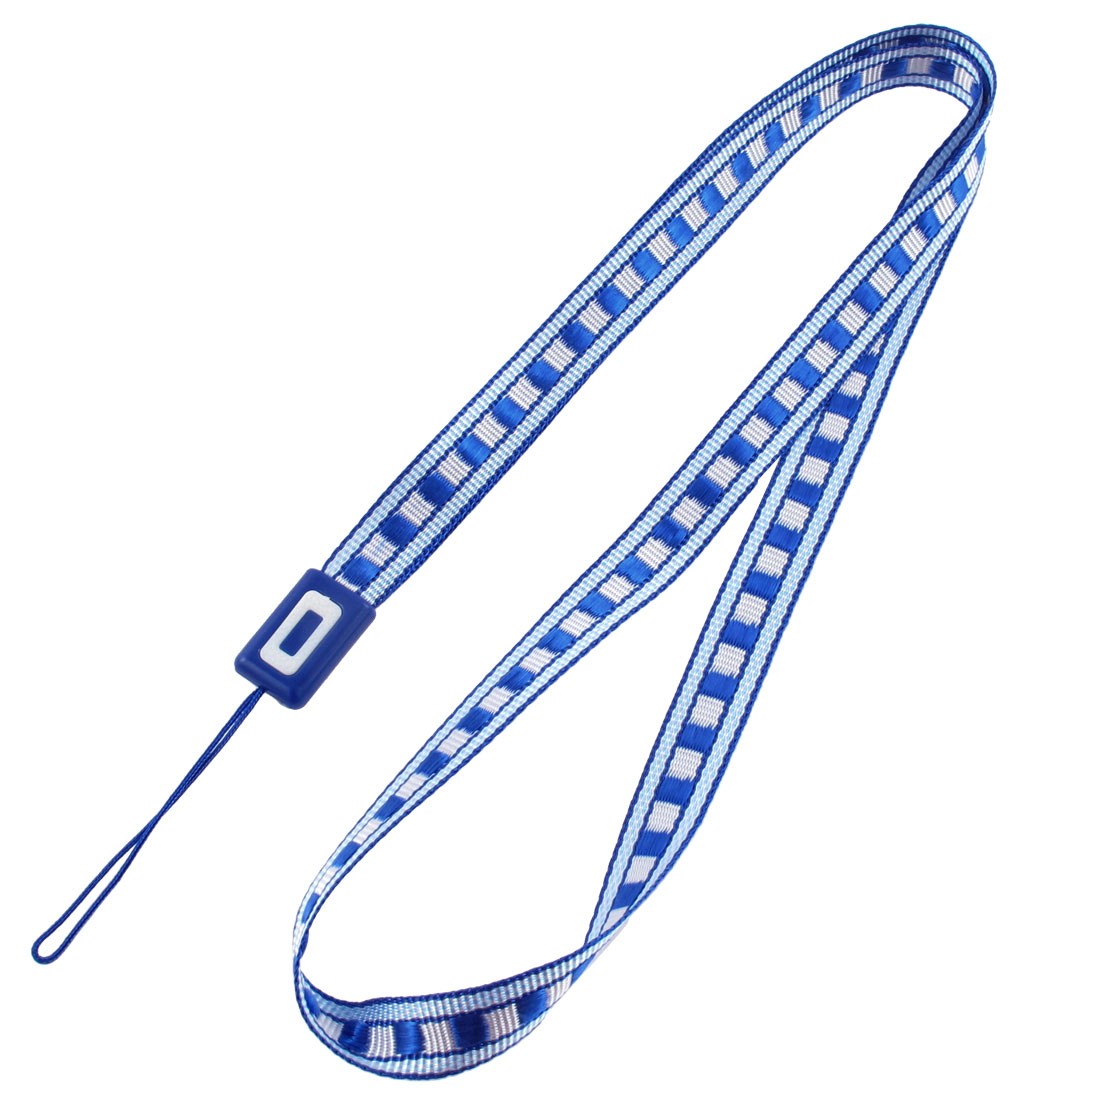 Fabric Plaid Pattern Cellphone MP4 Keyring String Strap Lanyard Blue